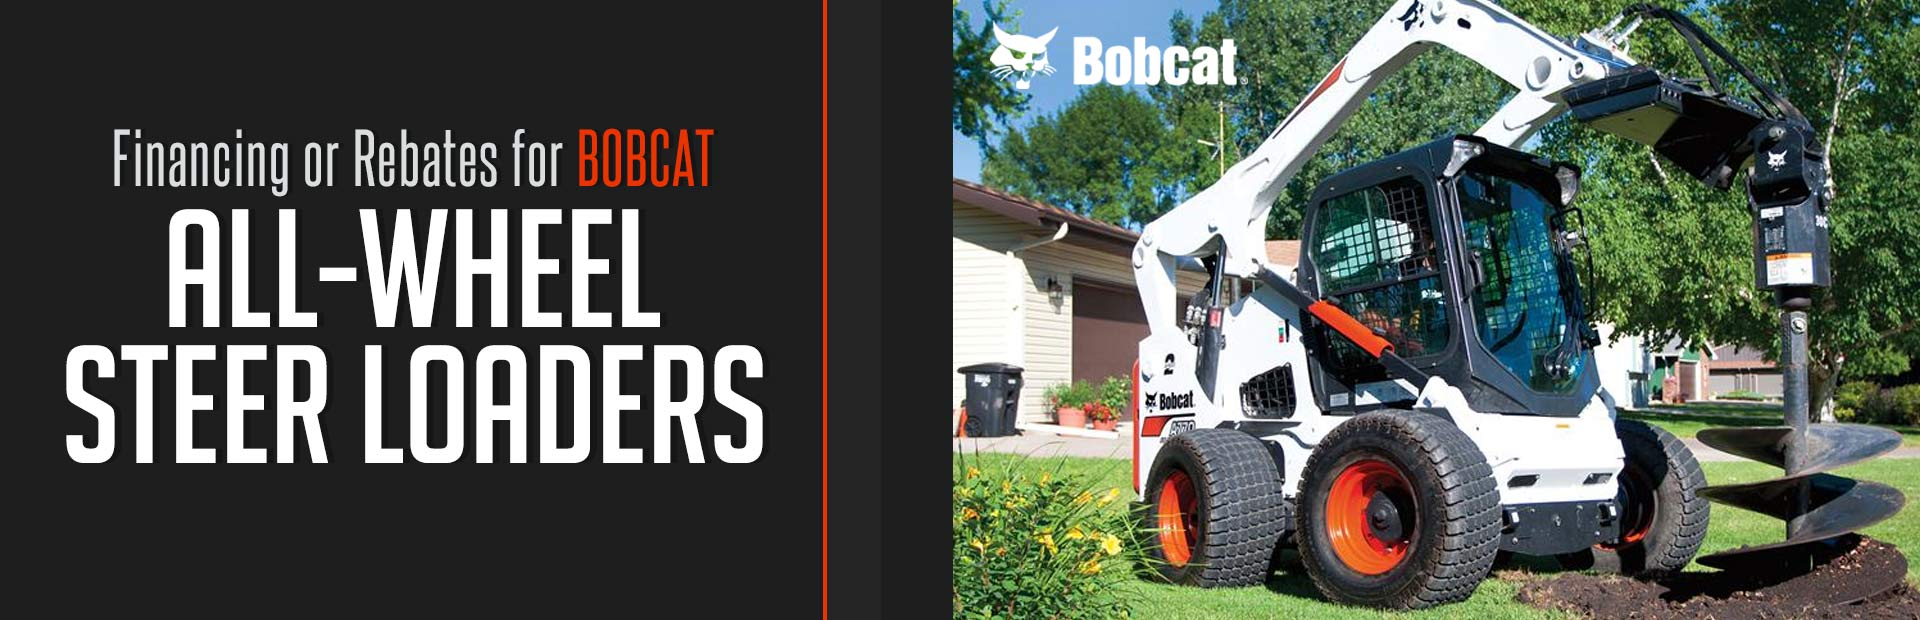 Financing or Rebates for All-Wheel Steer Loaders